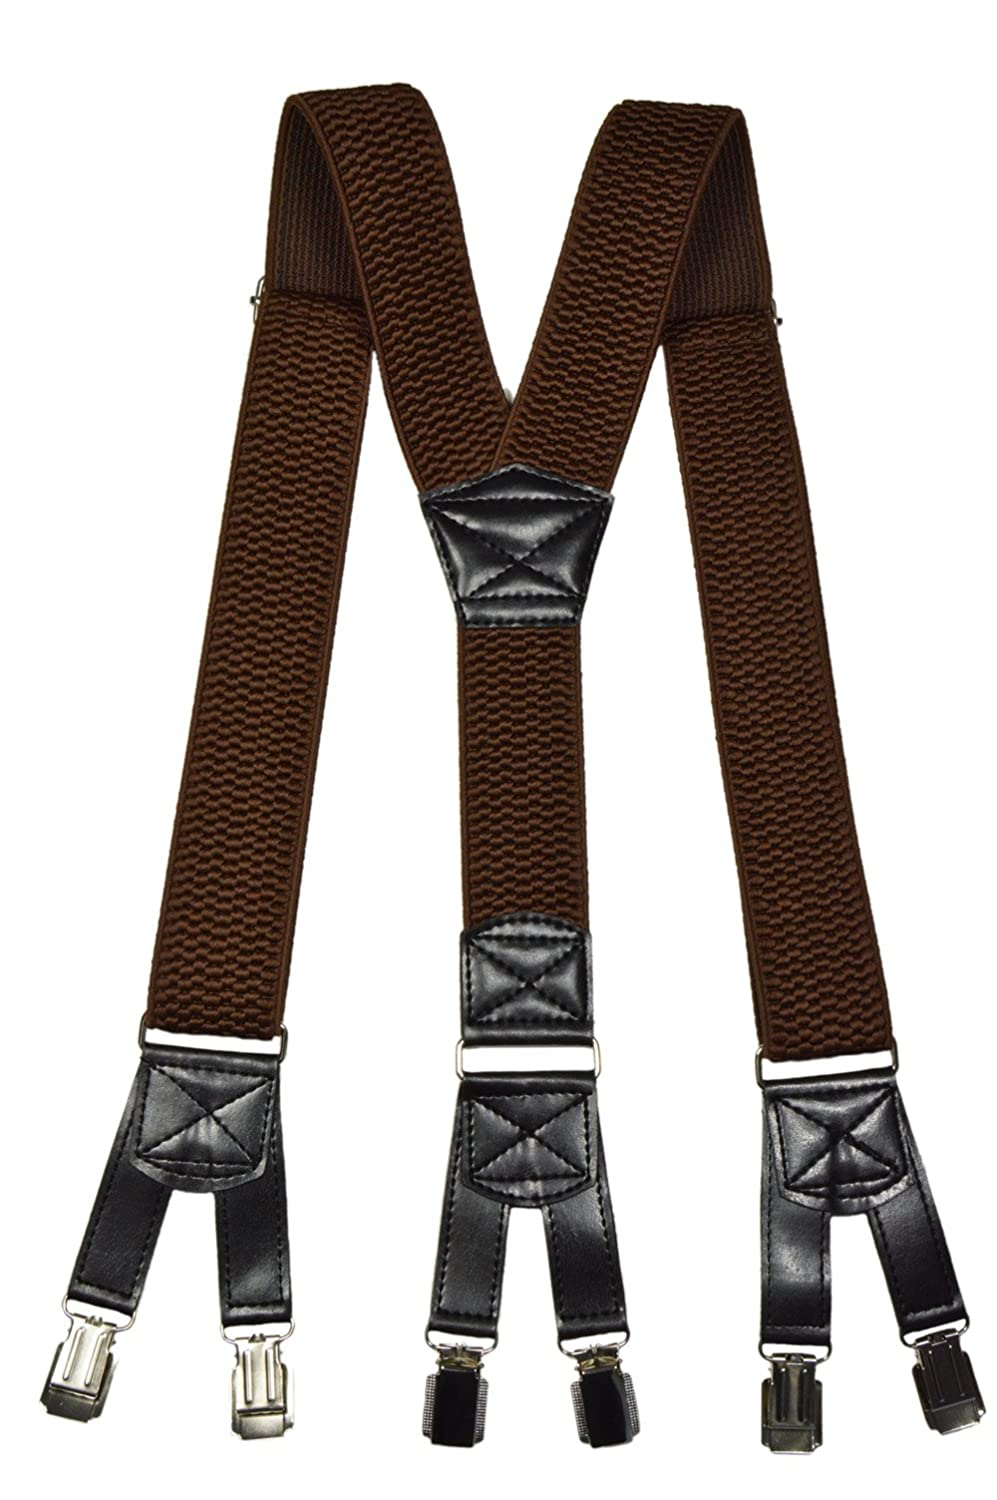 Heavy Duty Y-Shape Braces/Suspenders with 6 Clip Design, 4cm 4cm - Brown BRACESX-brown